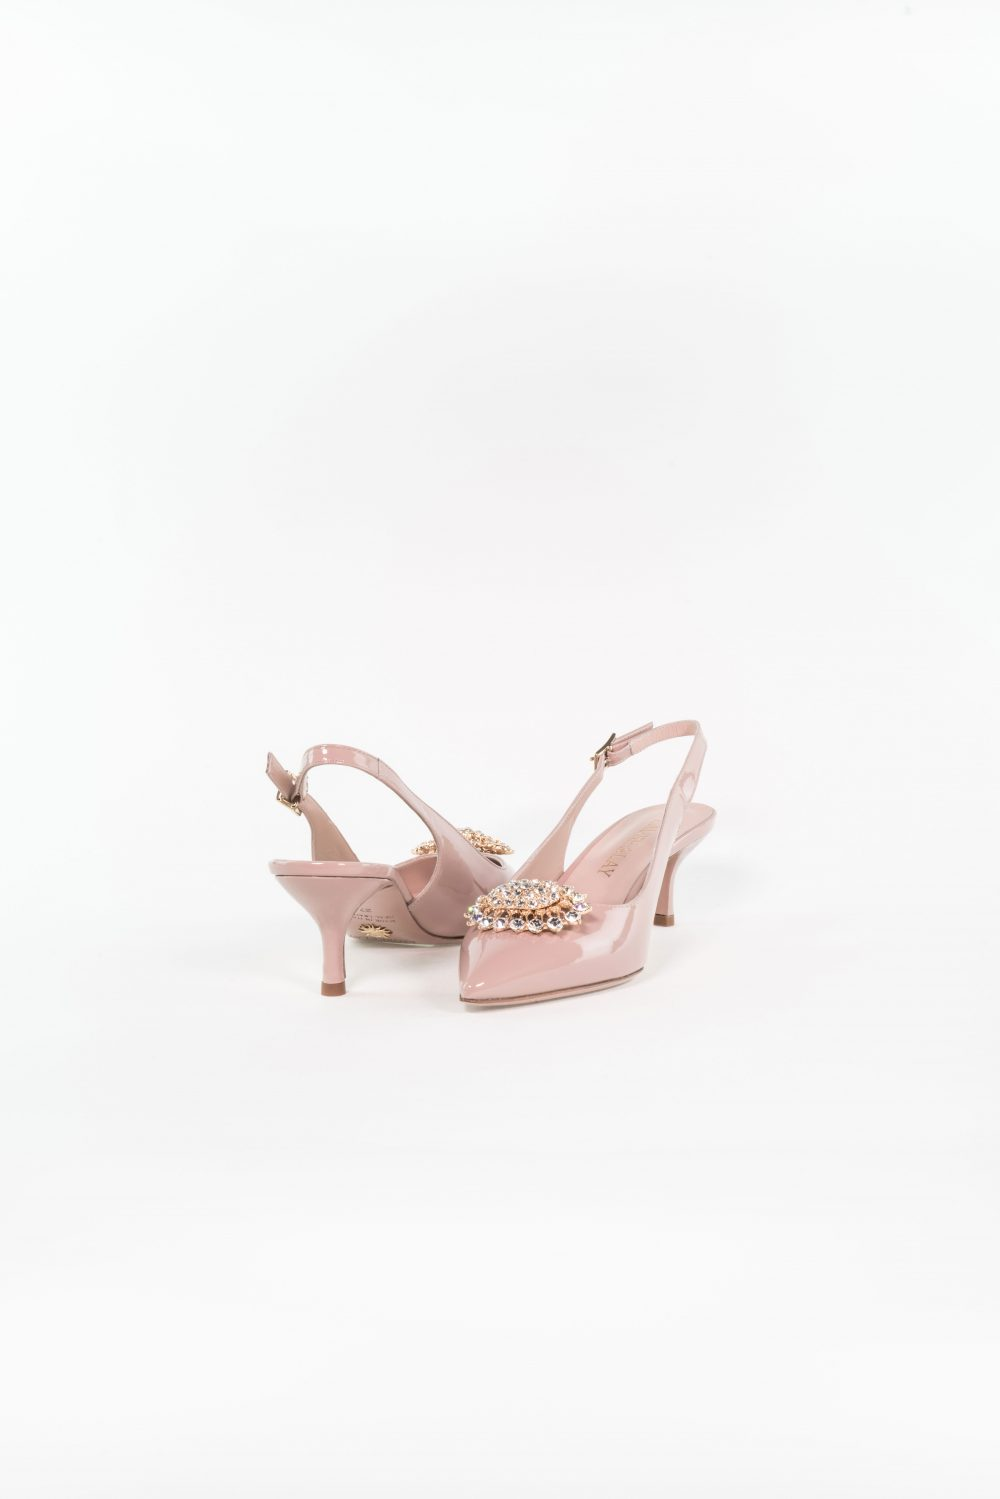 Cocktailschuh Theresa dusty rose mit Queeny Absatz